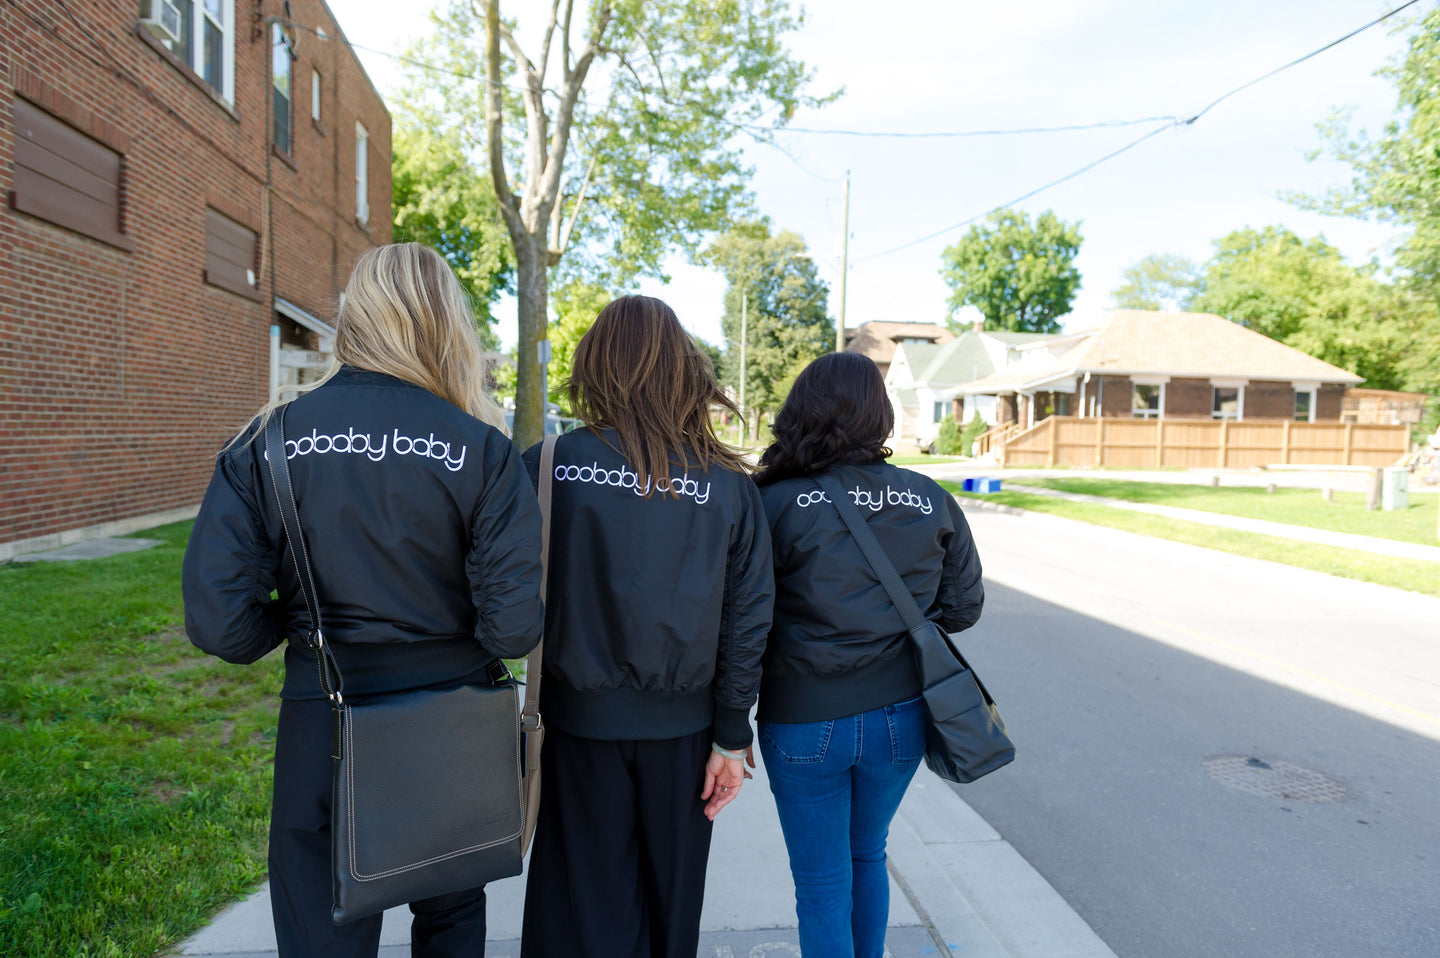 The ooobabybaby bombers are designed in Canada and are the perfect jacket with ruched sleeves, 2 domed exterior pockets, 1 interior pocket and machine washable.